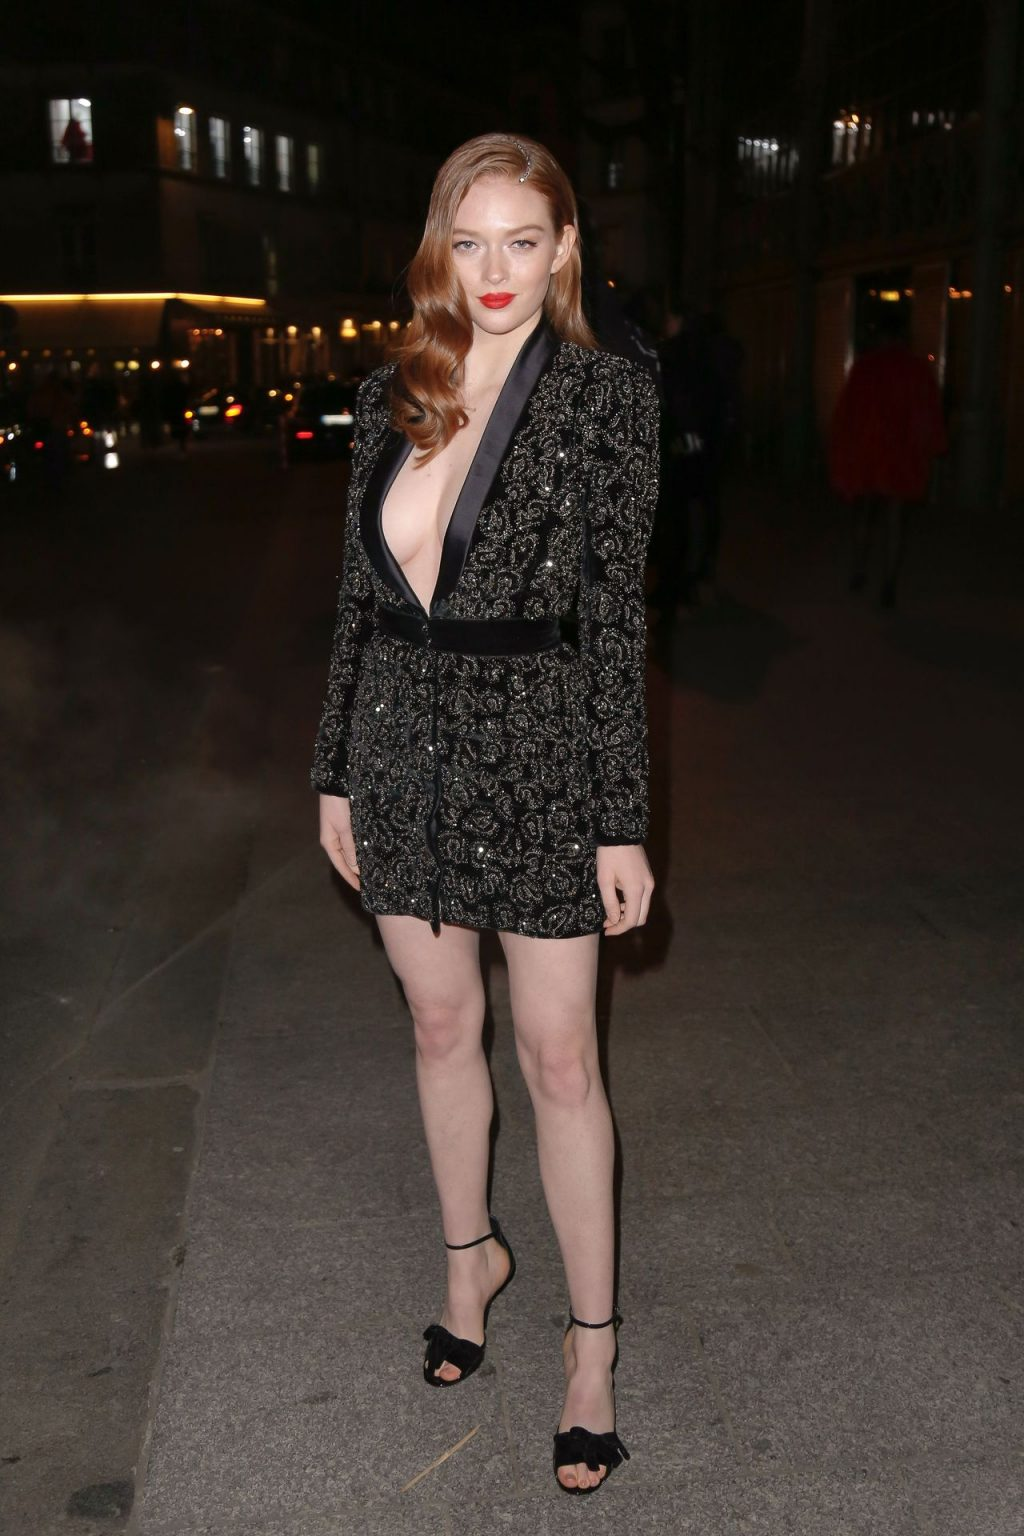 Larsen Thompson Wows with Her Tits at the Fashion Show (11 Photos)